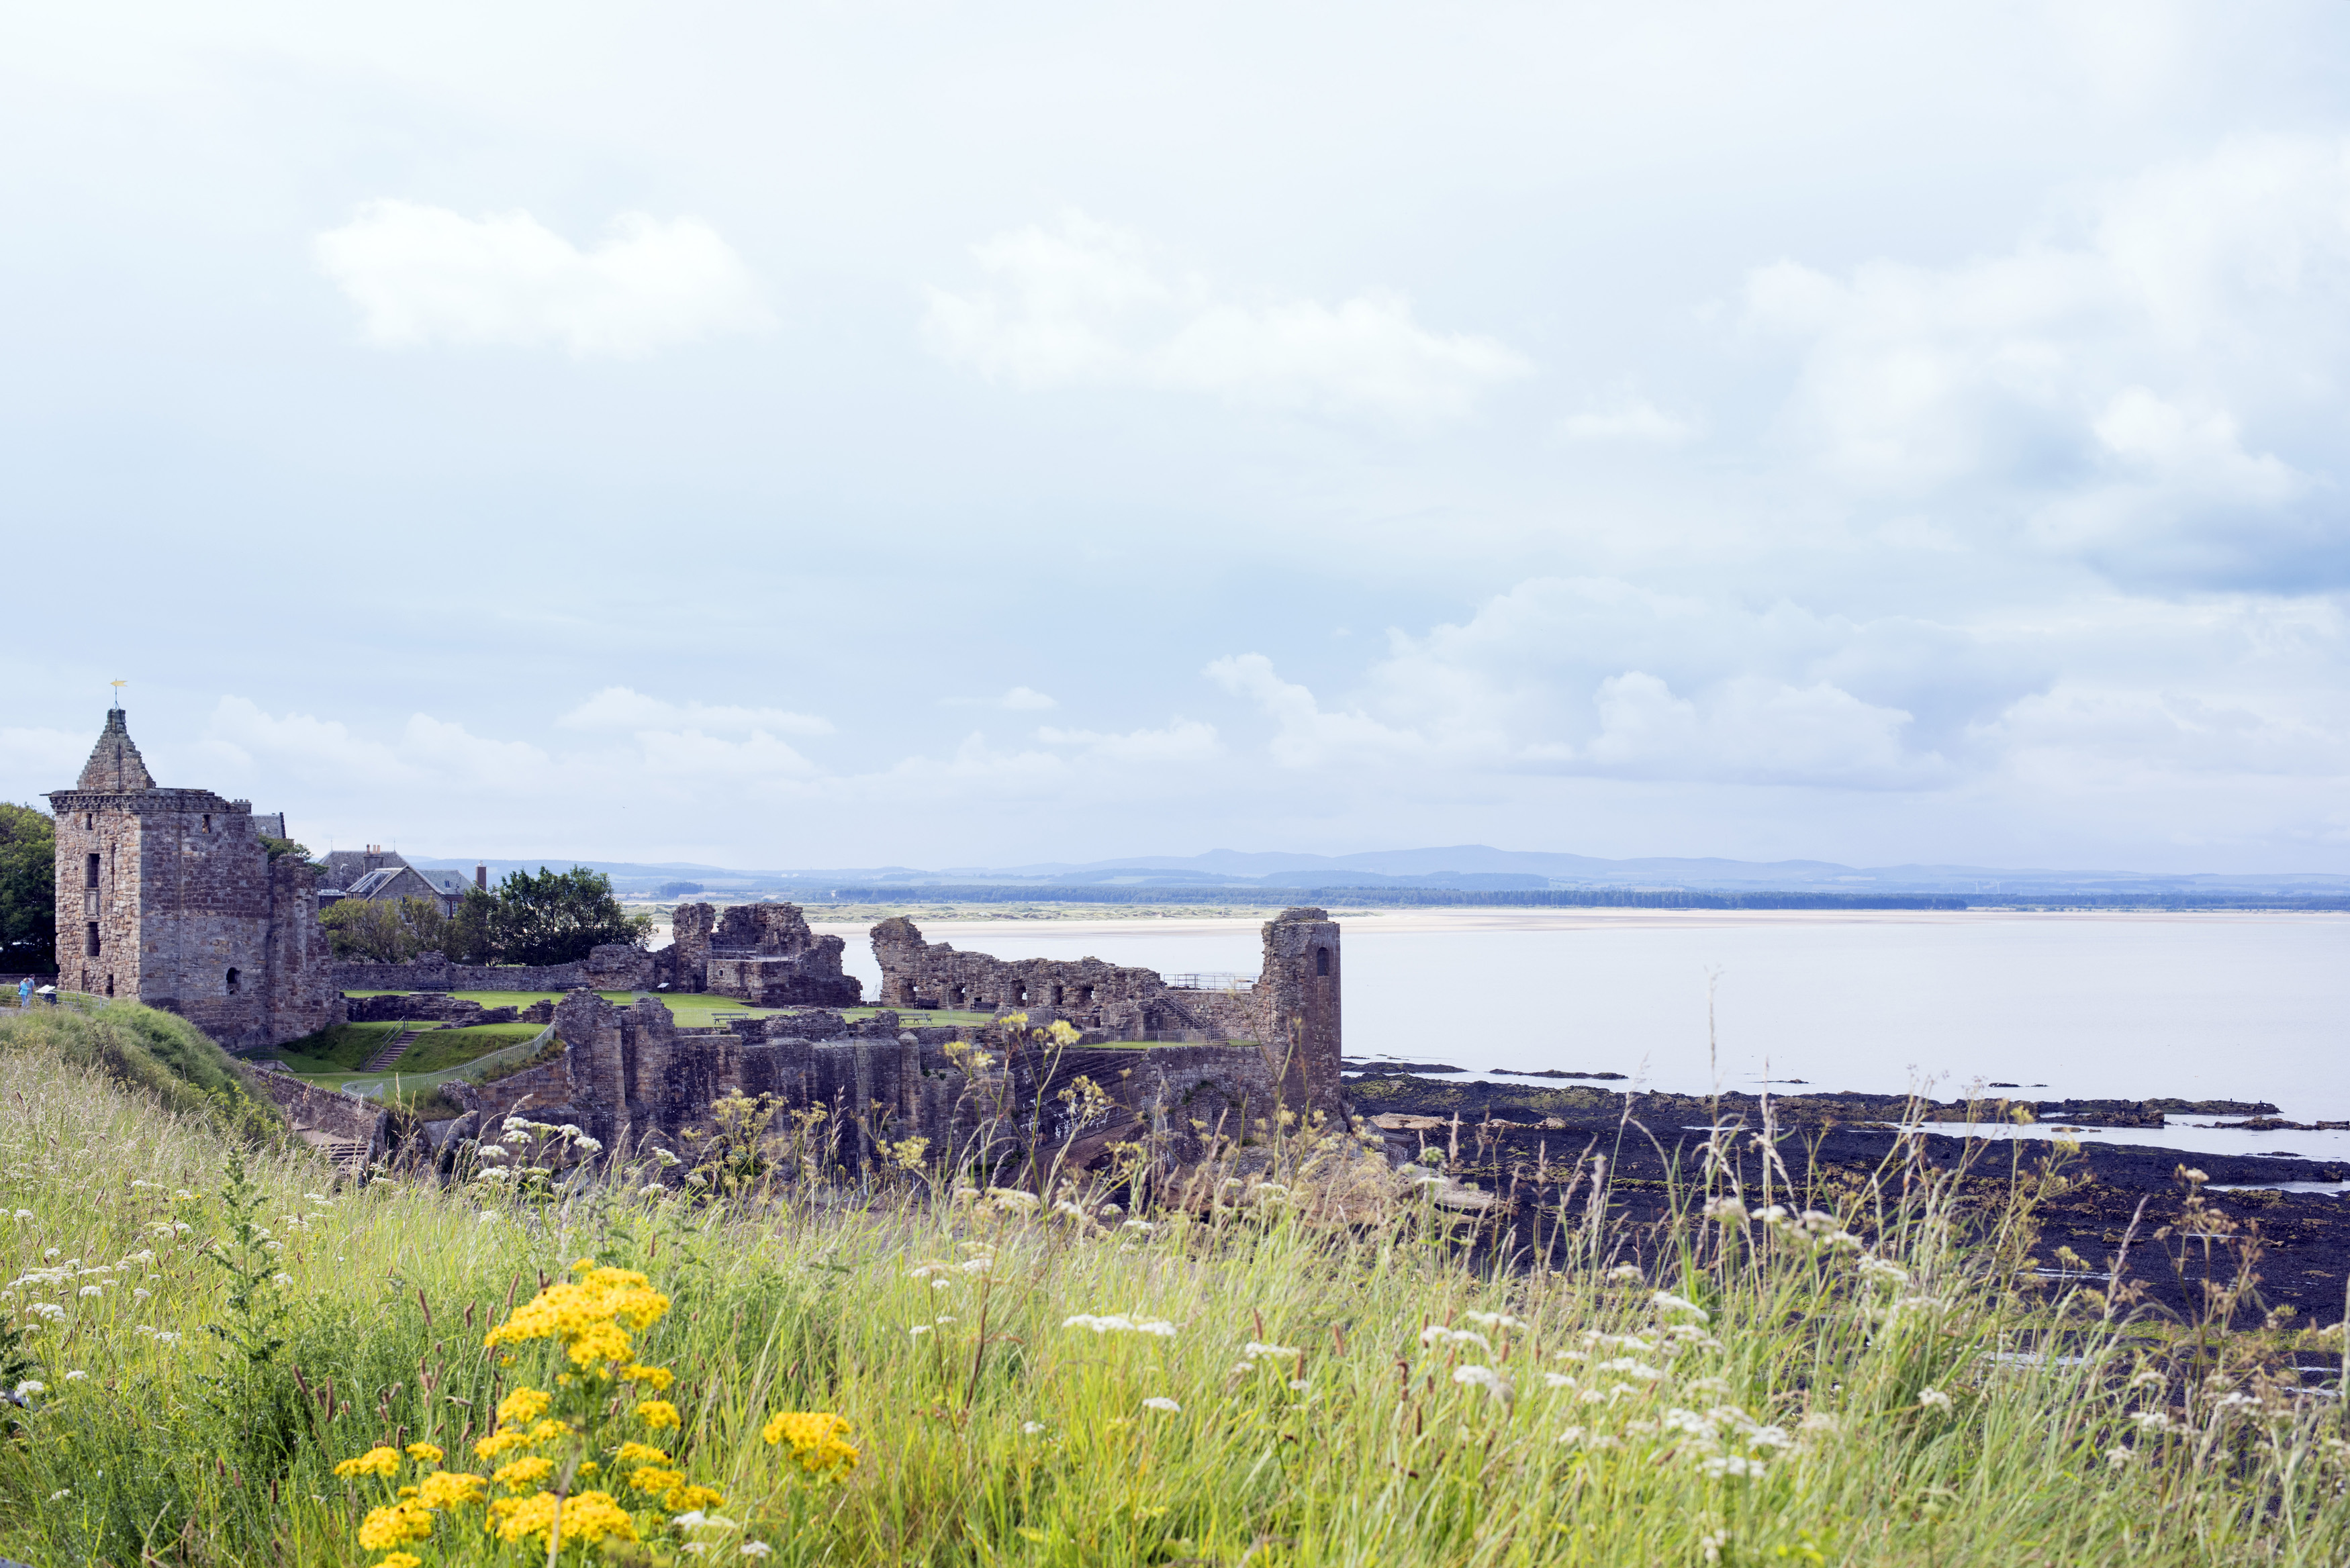 View on old ruins of Saint Andrews cathedral from grassy knoll with wildflowers and mountains in the far distance